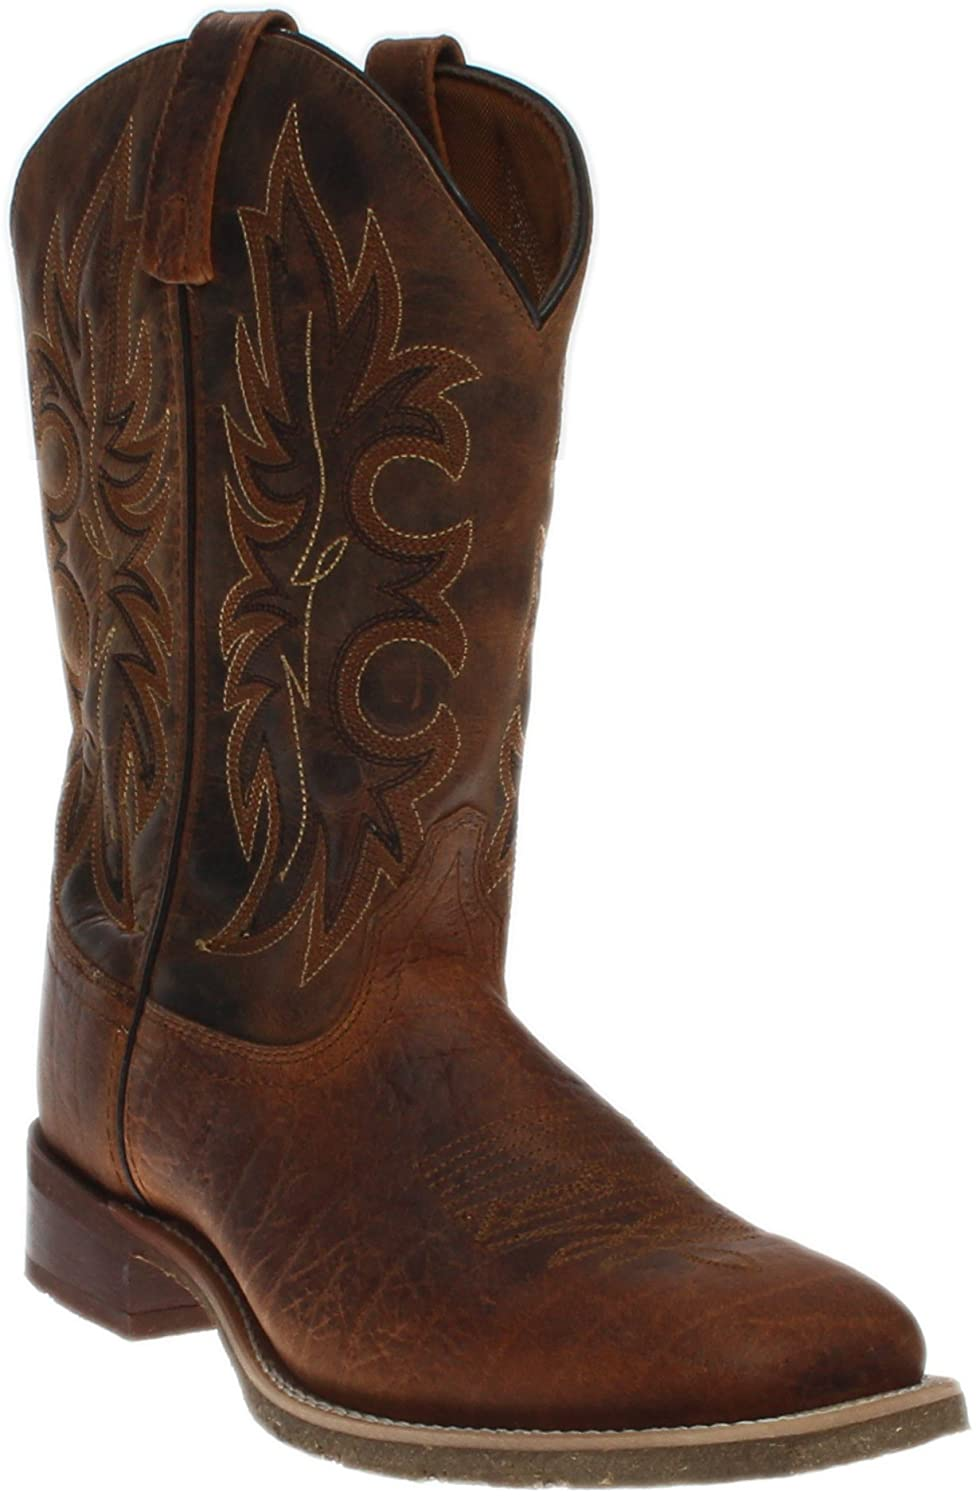 Laredo Mens Durant Square Toe Rust Boots B01FG6AROQ 9.5 D US|Rust/Copper